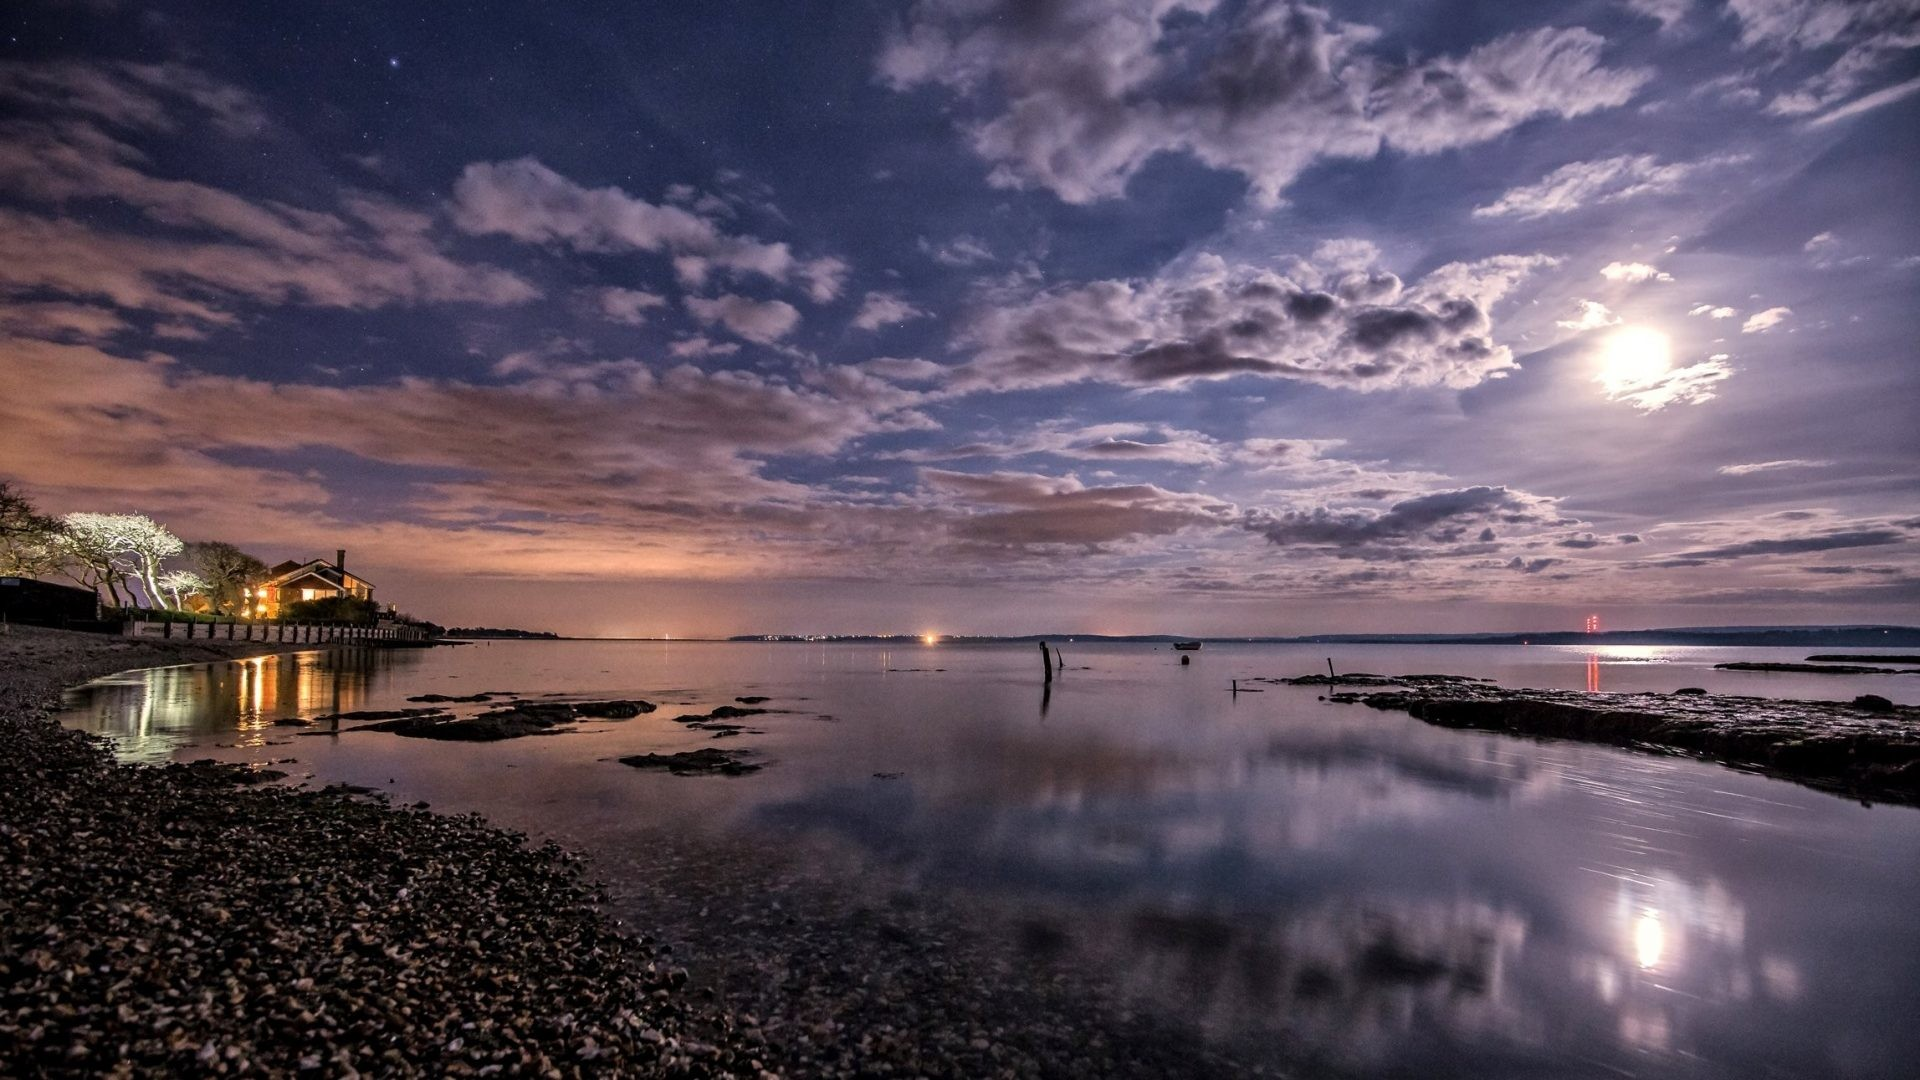 Res: 1920x1080, Beaches - Night Clouds Kingdom Moon Sky United Nature Coast Scenery  Lymington Images for HD 16